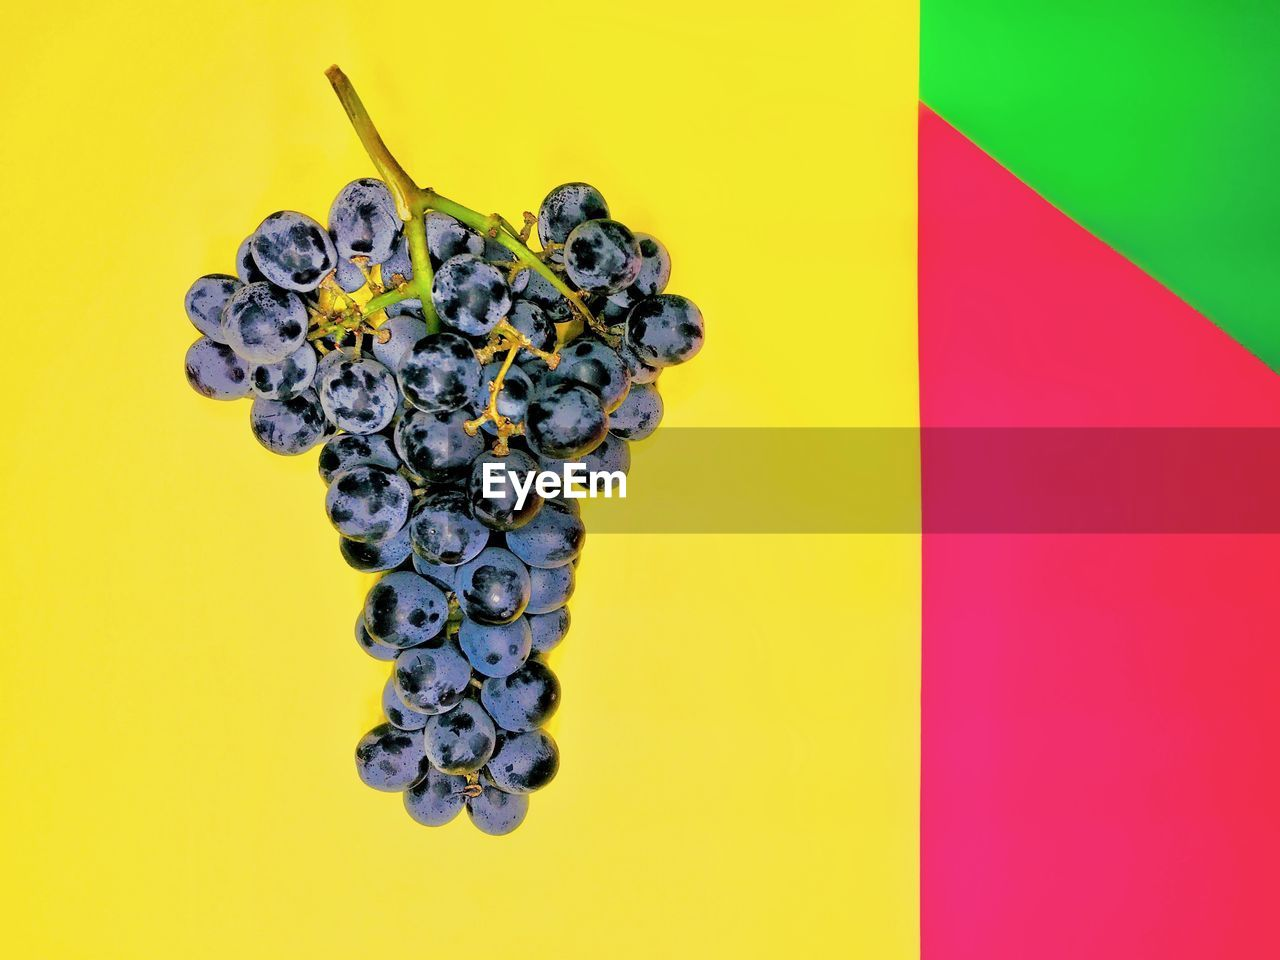 colored background, yellow, indoors, healthy eating, fruit, food and drink, food, studio shot, no people, multi colored, berry fruit, wellbeing, freshness, close-up, yellow background, still life, grape, black color, pattern, copy space, ripe, purple